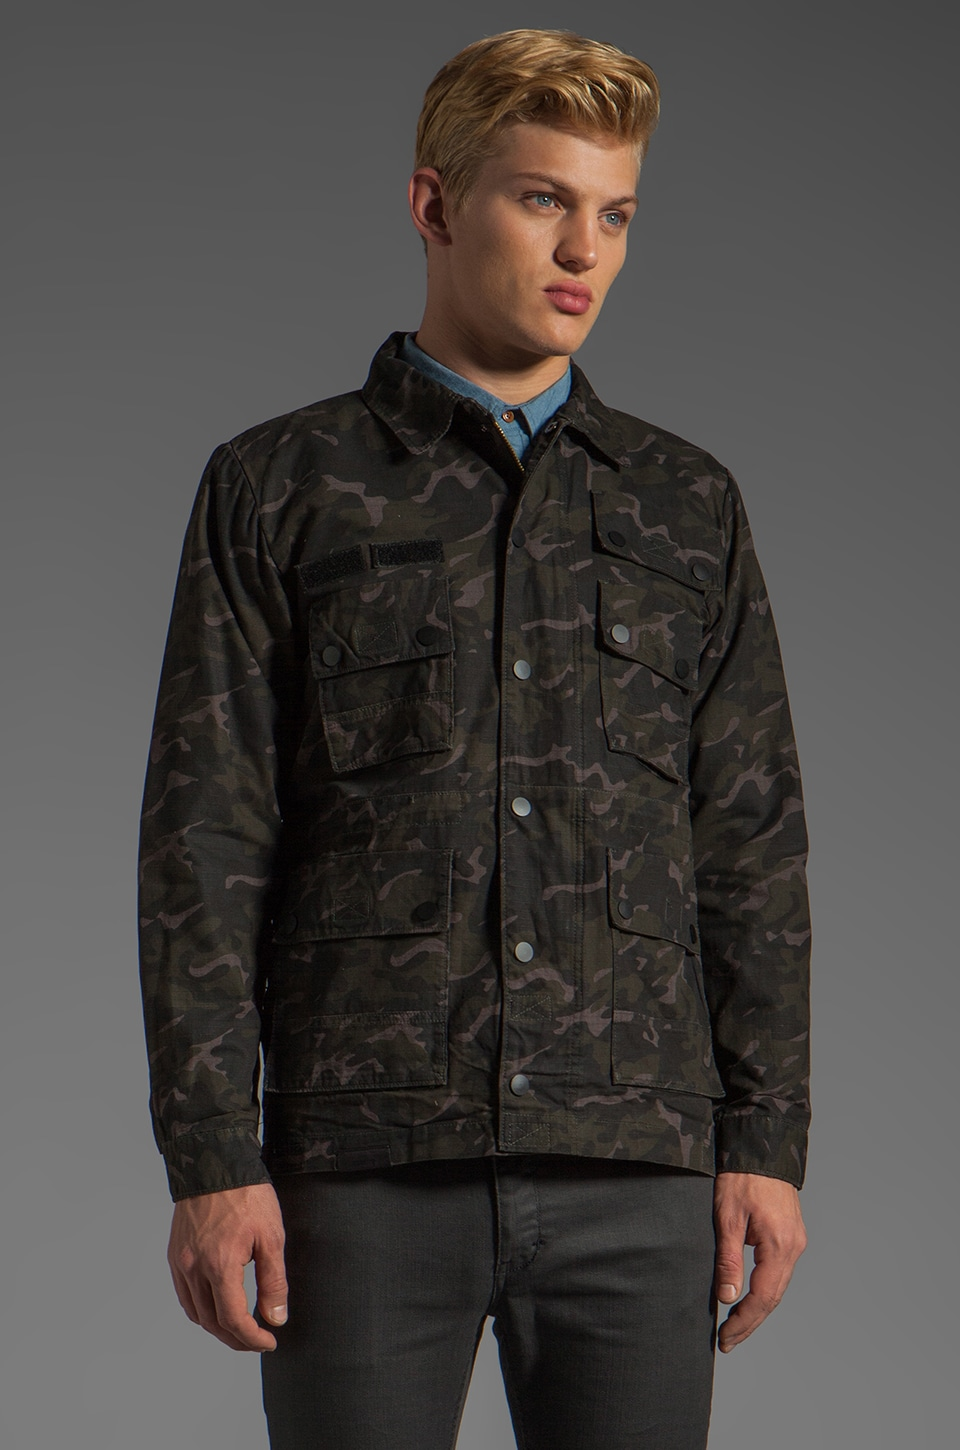 COMUNE Bryant Jacket in Camo